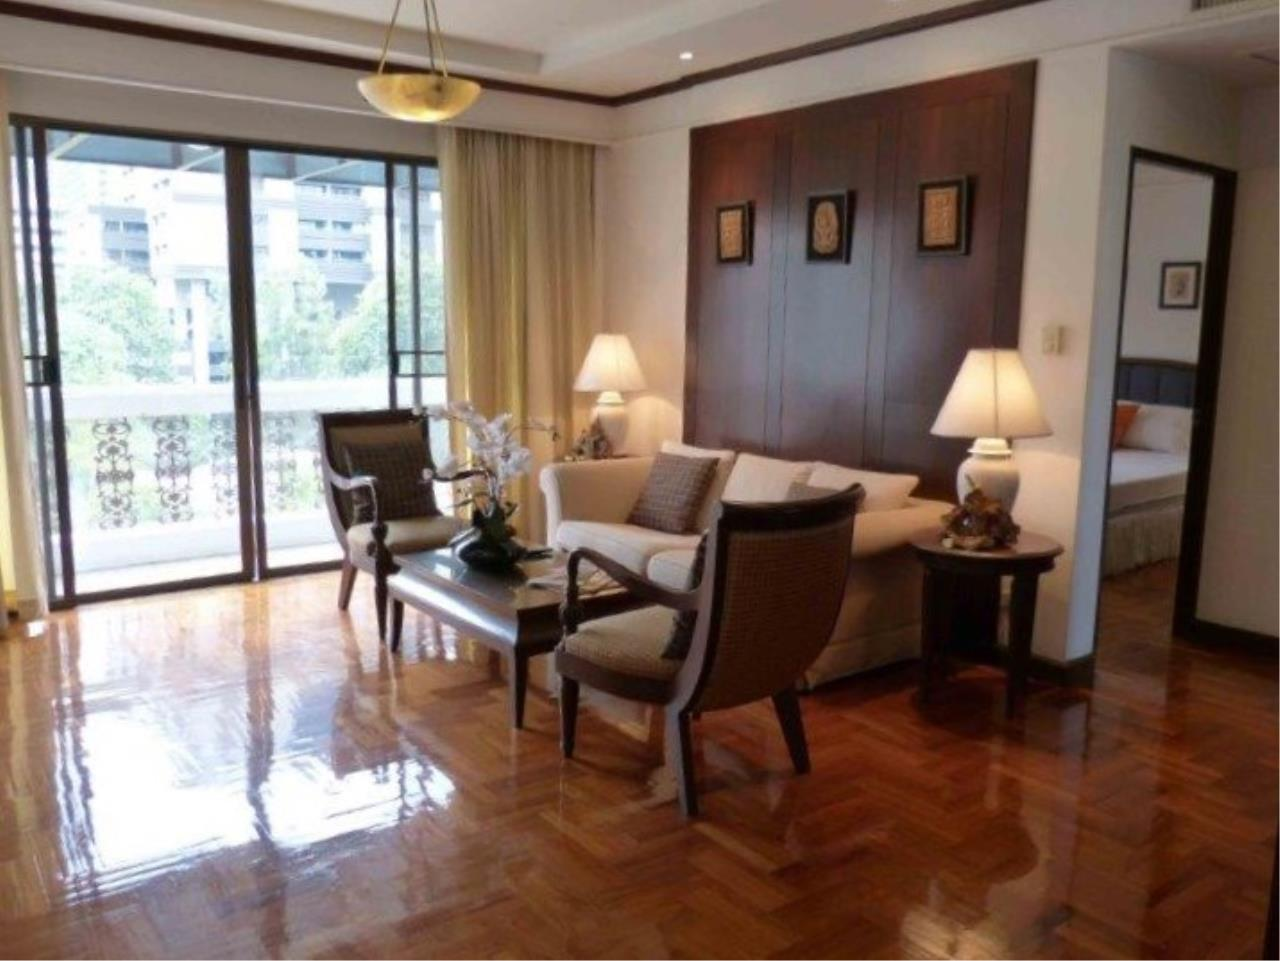 Century21 Skylux Agency's Piya Place Tonson / Apartment (Serviced) For Rent / 2 Bedroom / 88 SQM / BTS Chit Lom / Bangkok 12